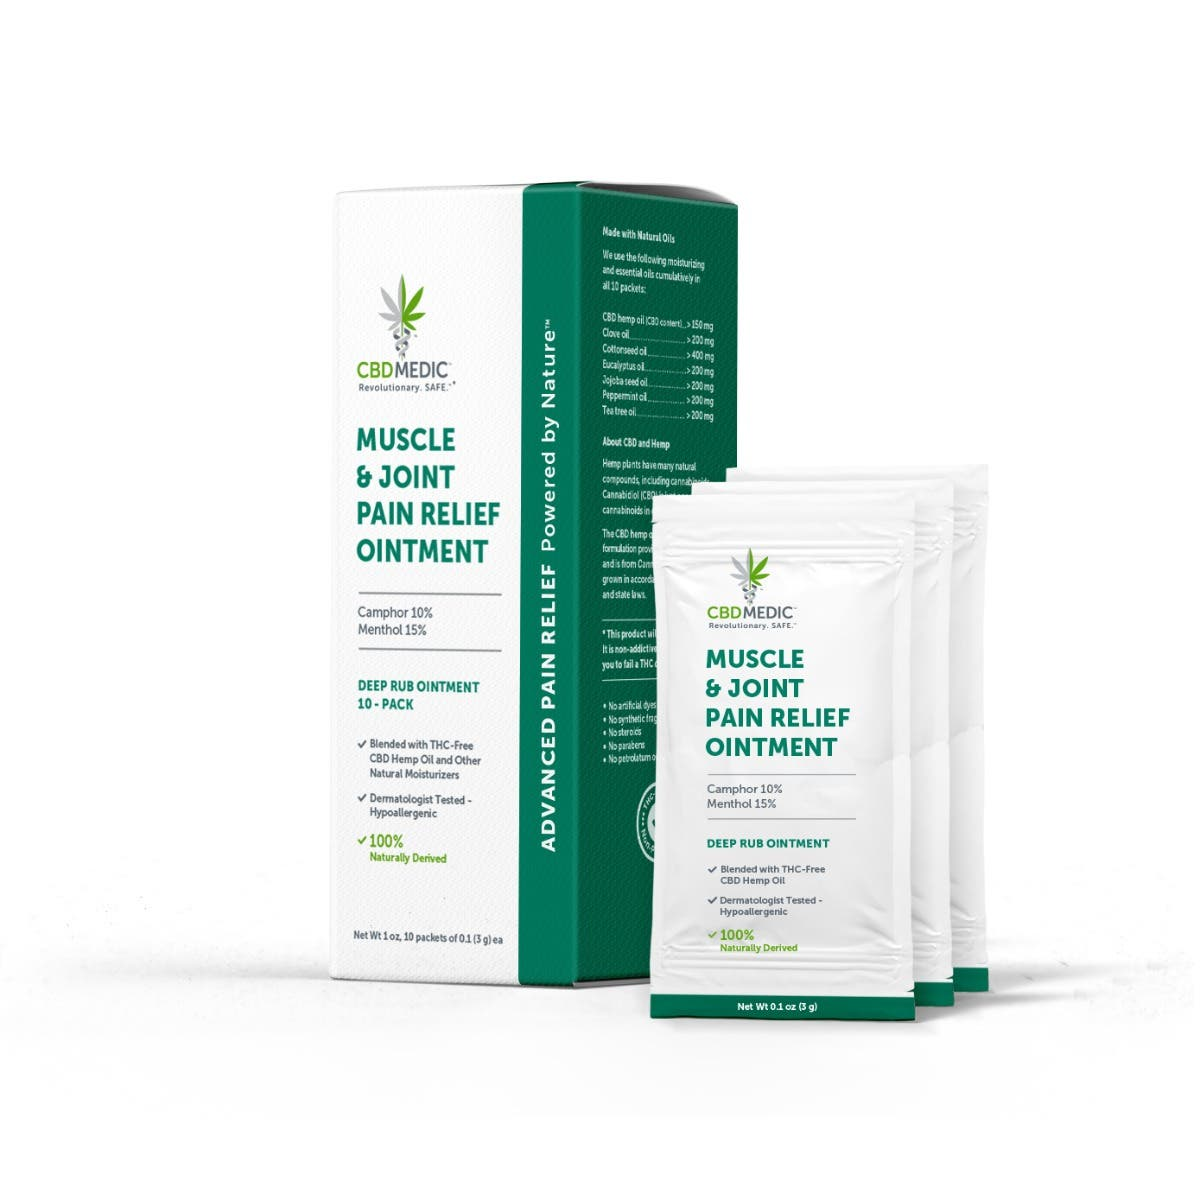 MUSCLE & JOINT PAIN RELIEF OINTMENT